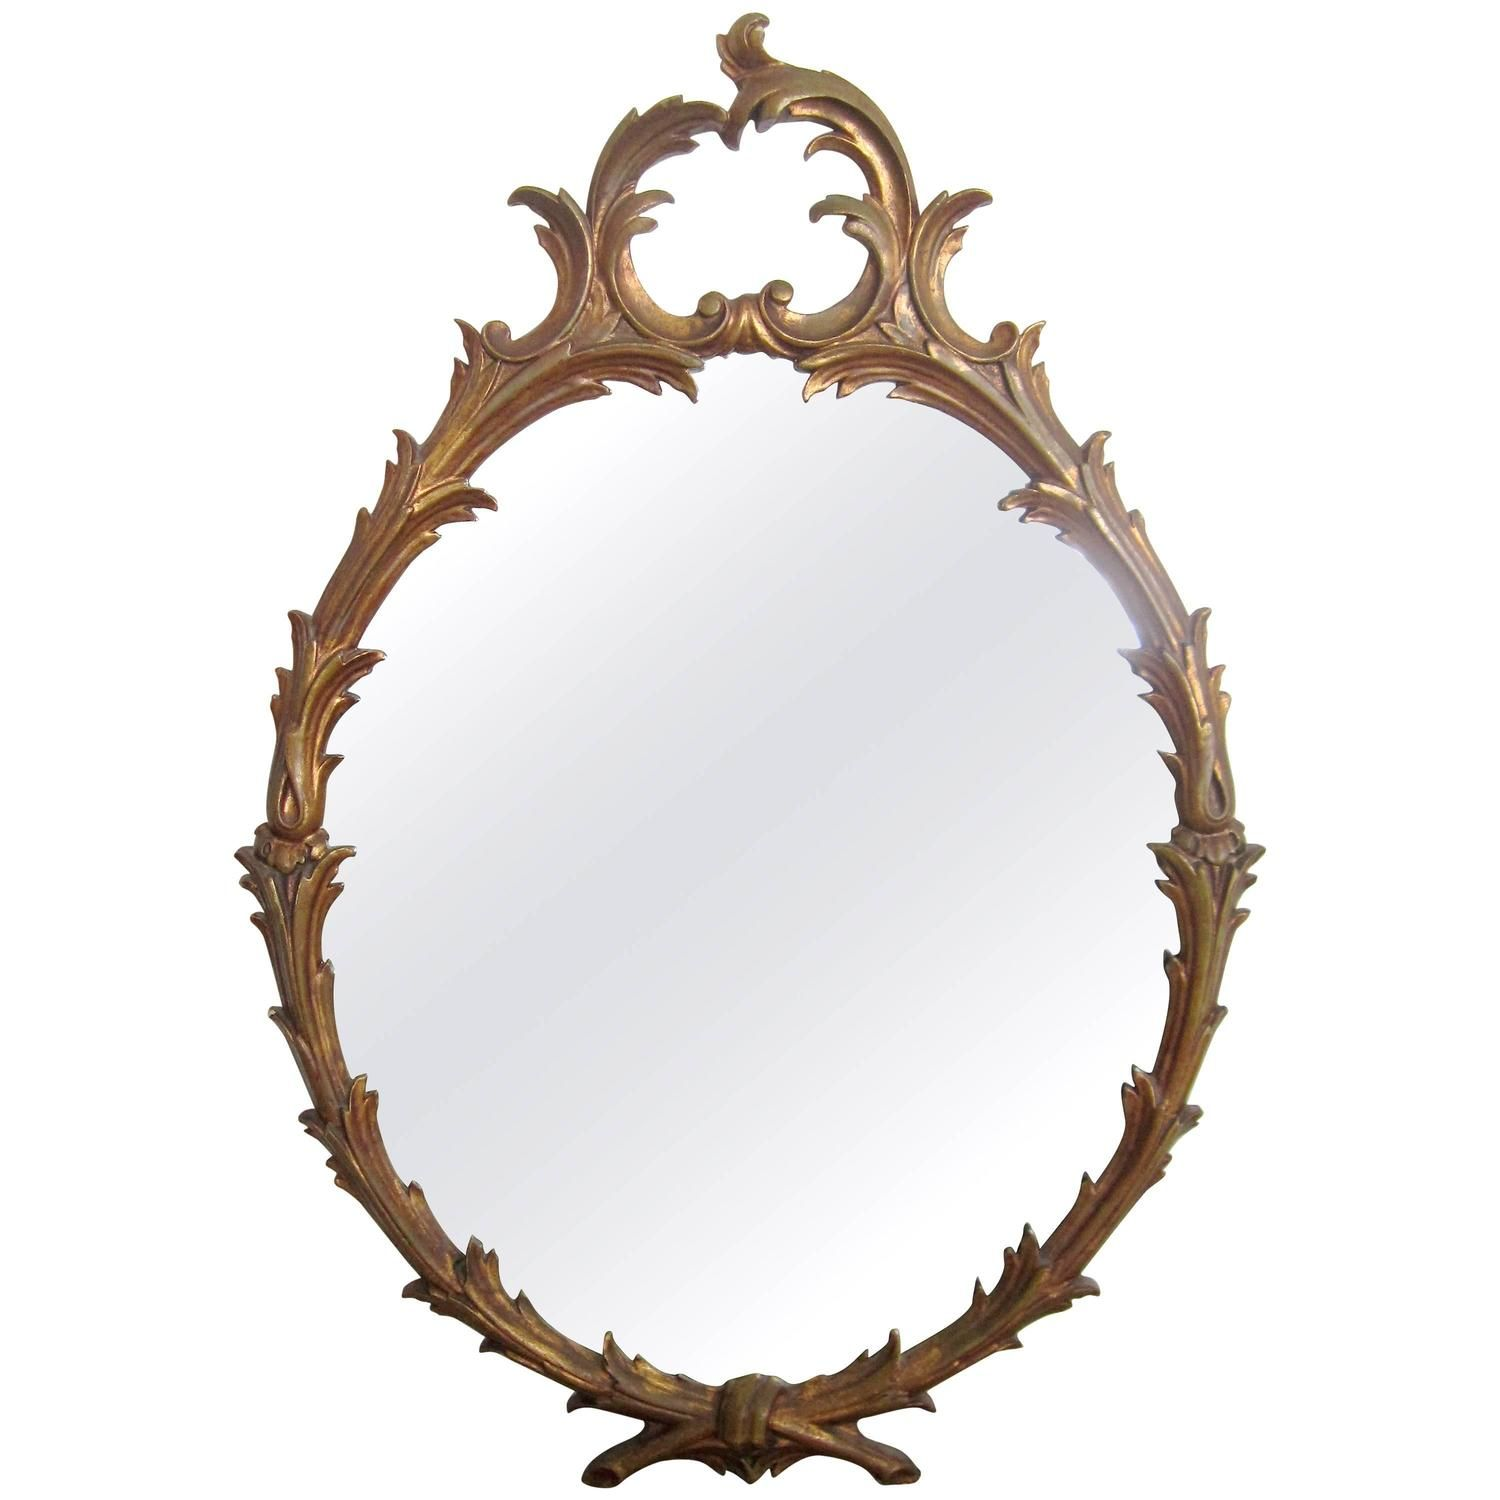 This italian circular wooden wall mirror is no longer available - Anne Dittmeier Beautiful Oval Gilt Wood Carved Mirror Italy From A Unique Collection